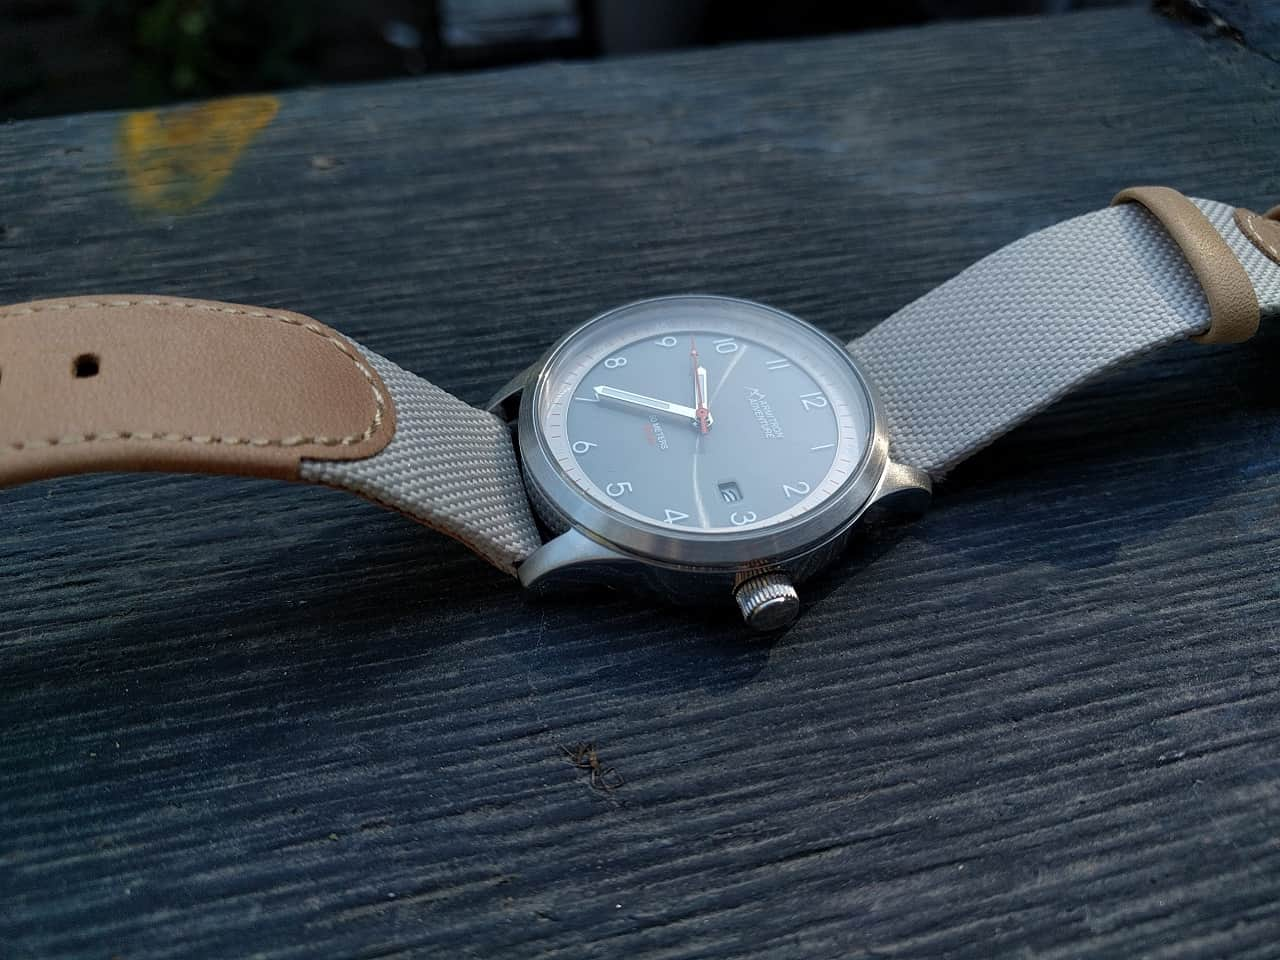 e0bf3a645 Armitron Adventure Solar-Powered Watch Review - Unfinished ...